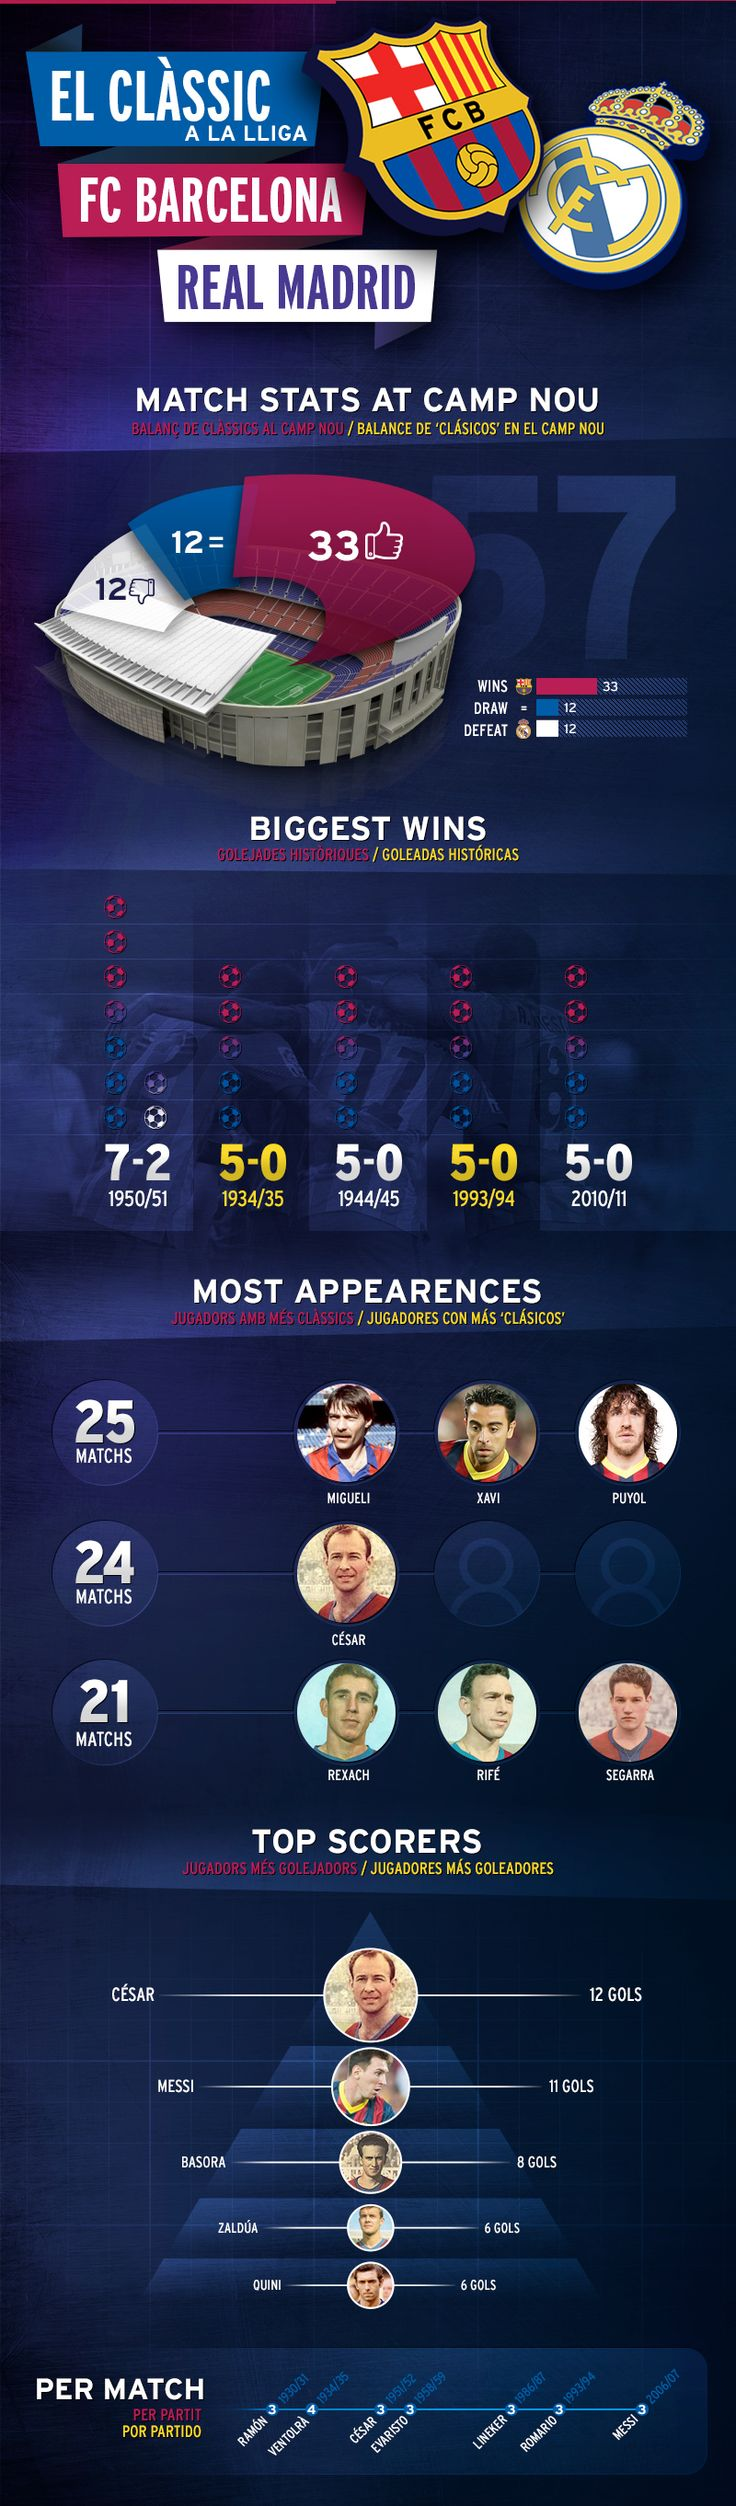 Historic stats on the FC Barcelona - Real Madrid rivalry in a special infographic | FC Barcelona